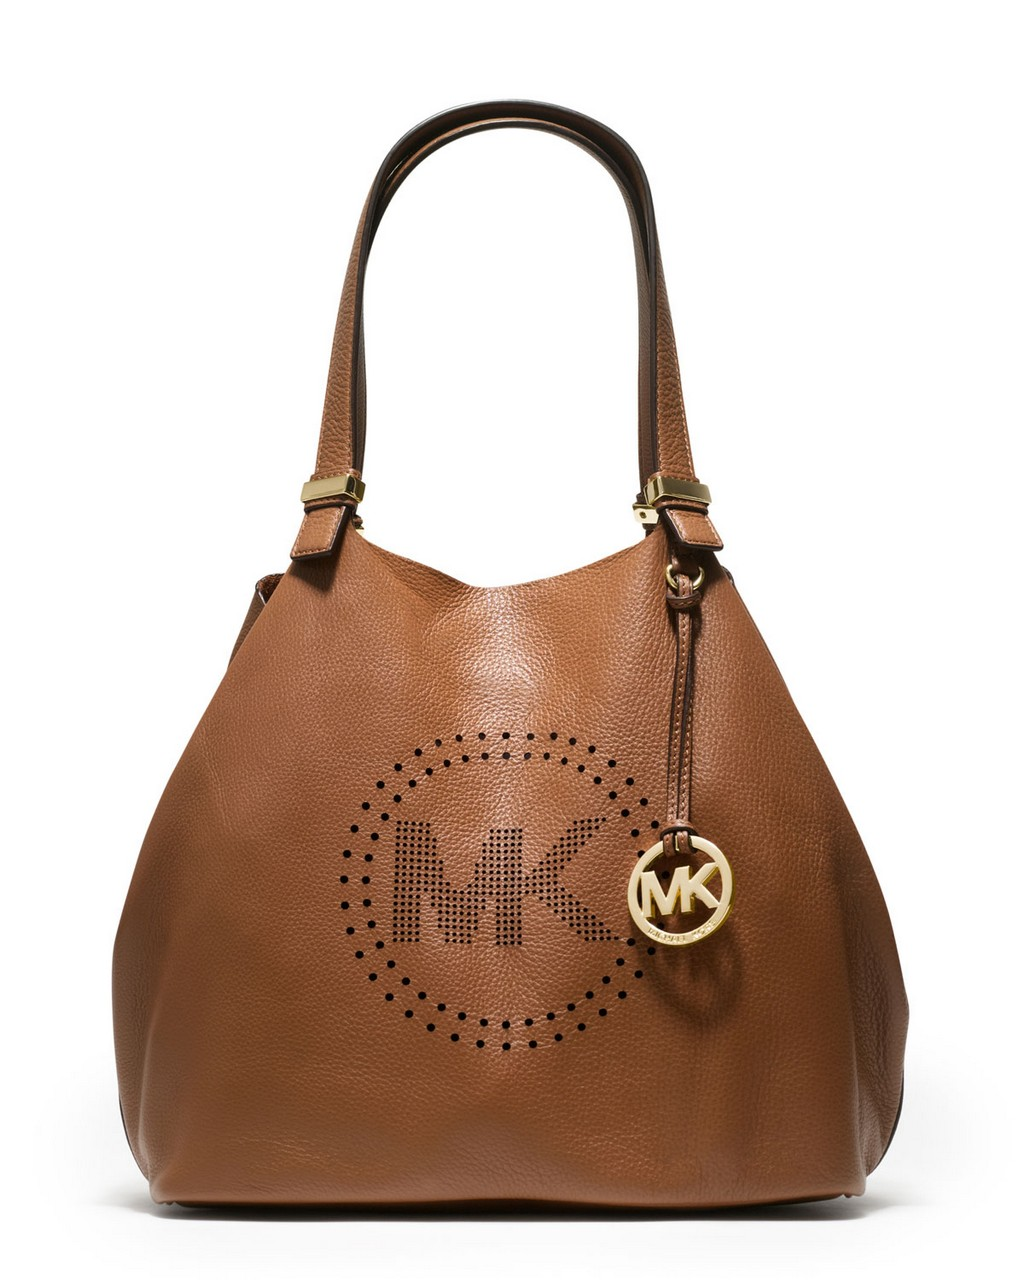 Stylish handbags designer handbags for women michael kors for Designer accessoires